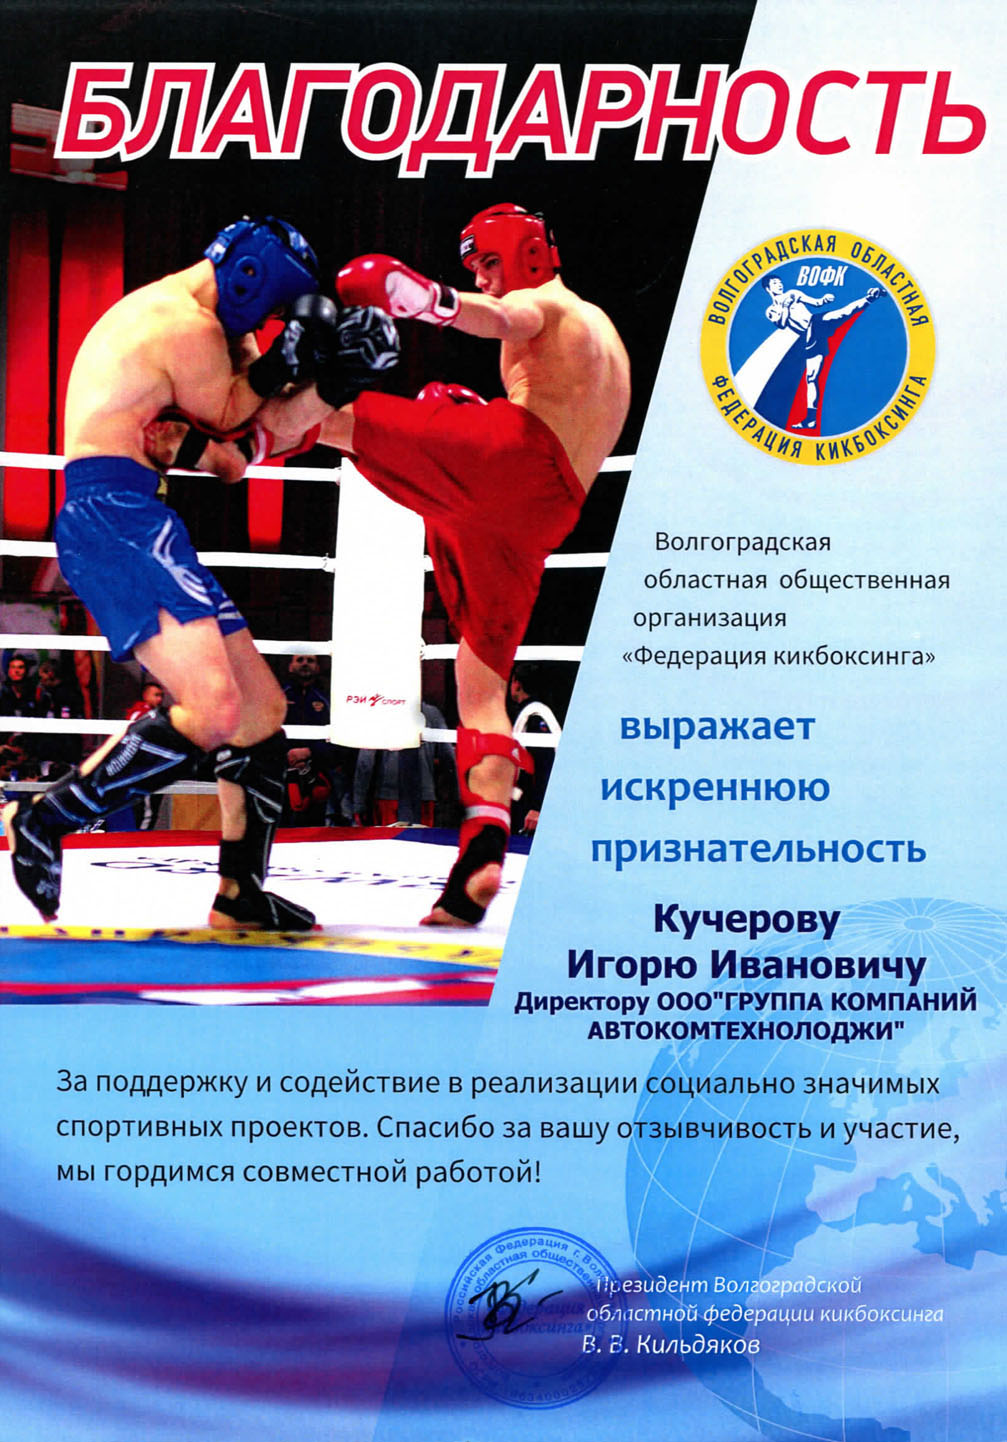 Acknowledgment from the Volgograd Regional Public Organization of the Kickboxing Federation